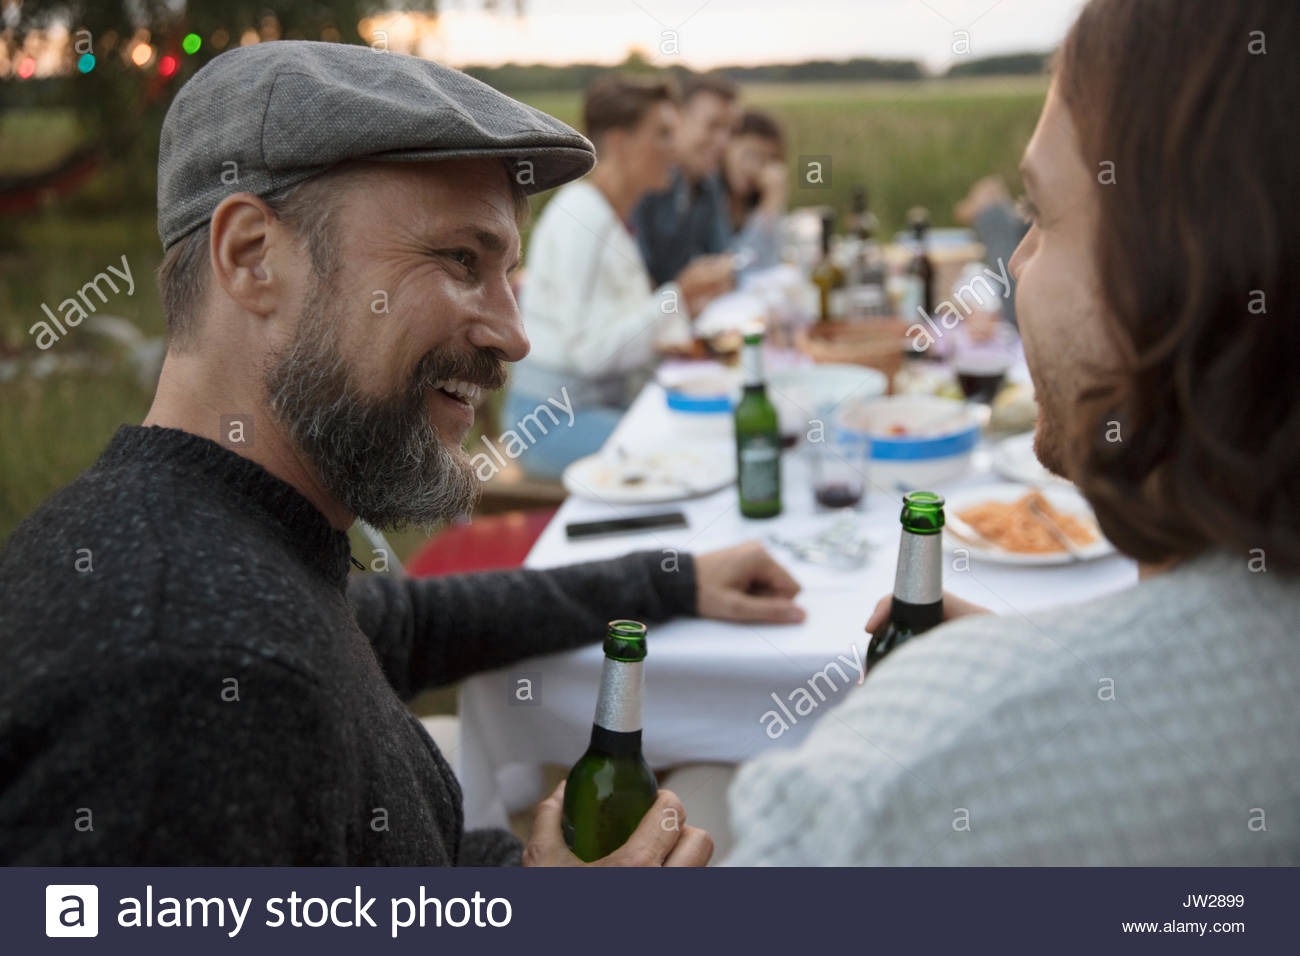 Smiling man drinking beer and talking to friend at summer garden party dinner - Stock Image